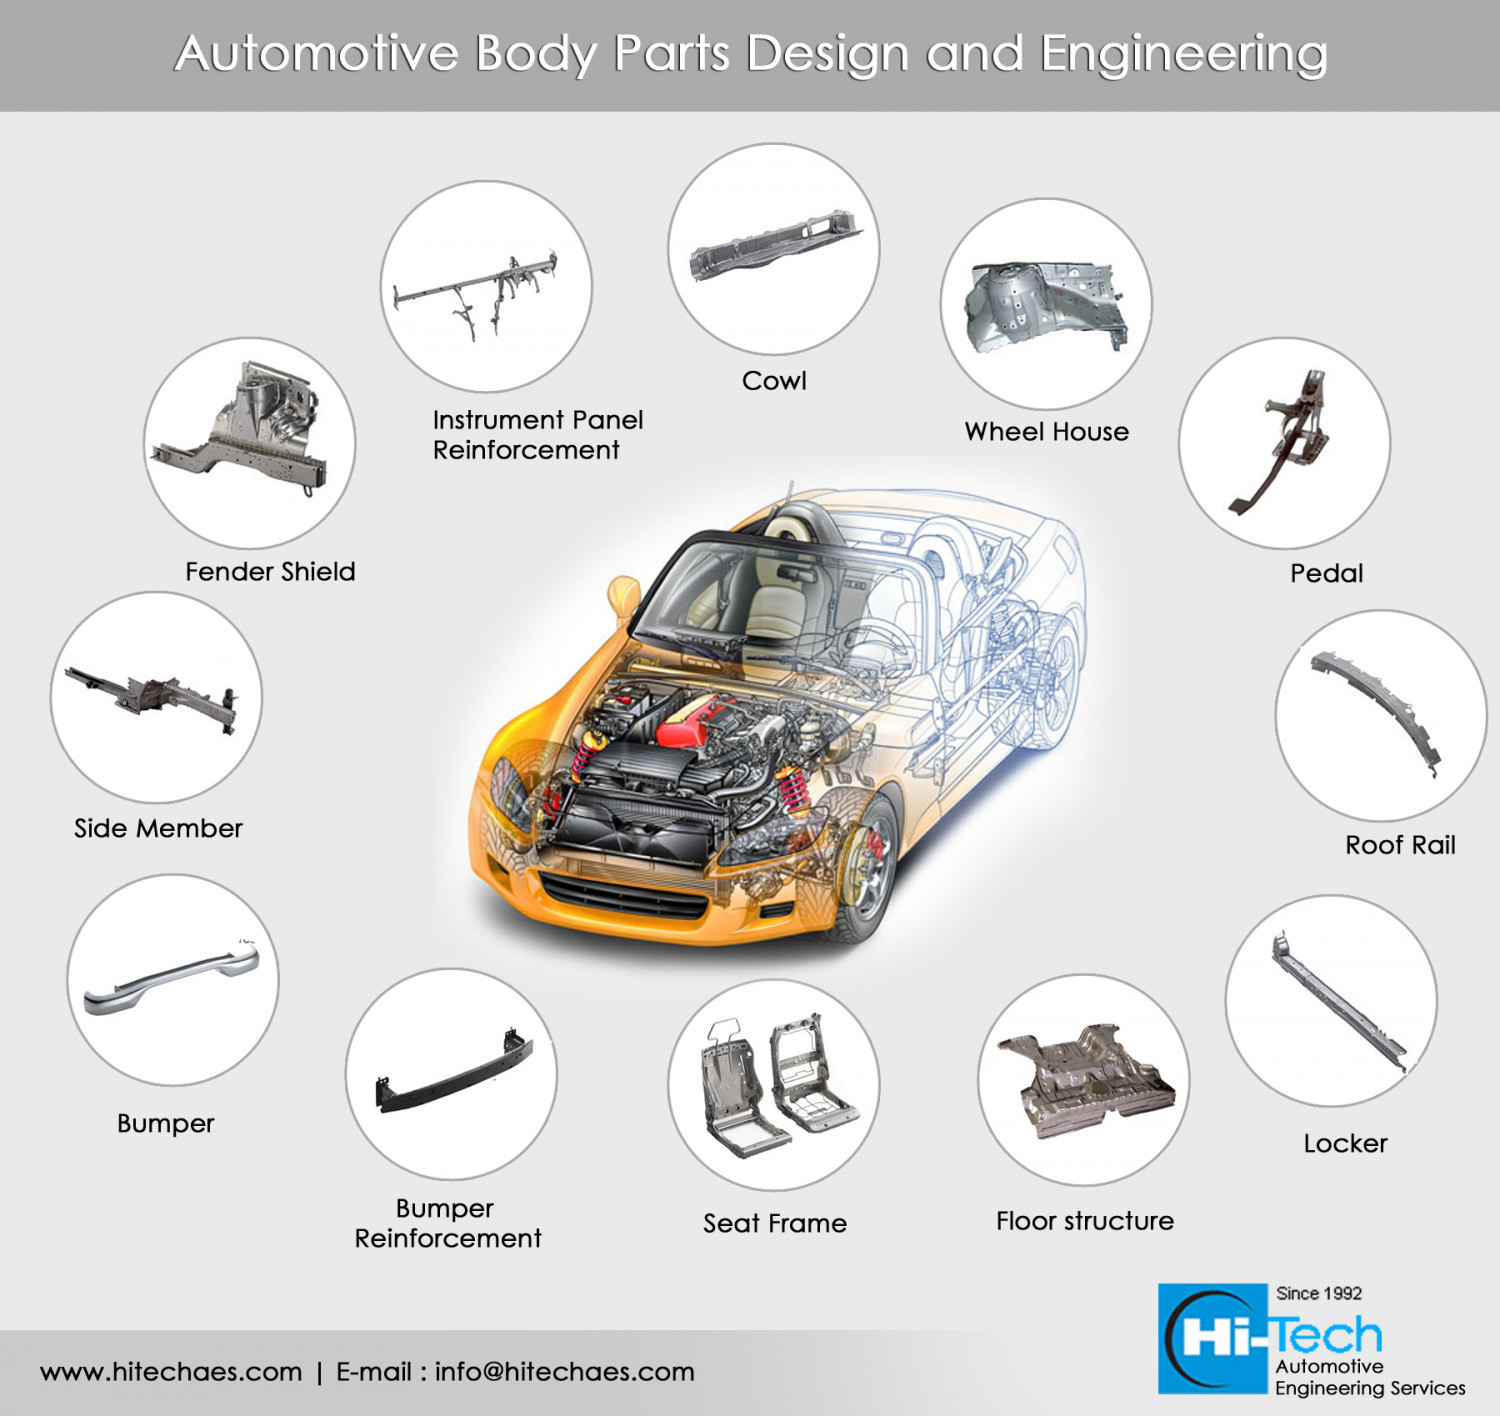 Automotive Body Parts Engineering Design | Visual.ly